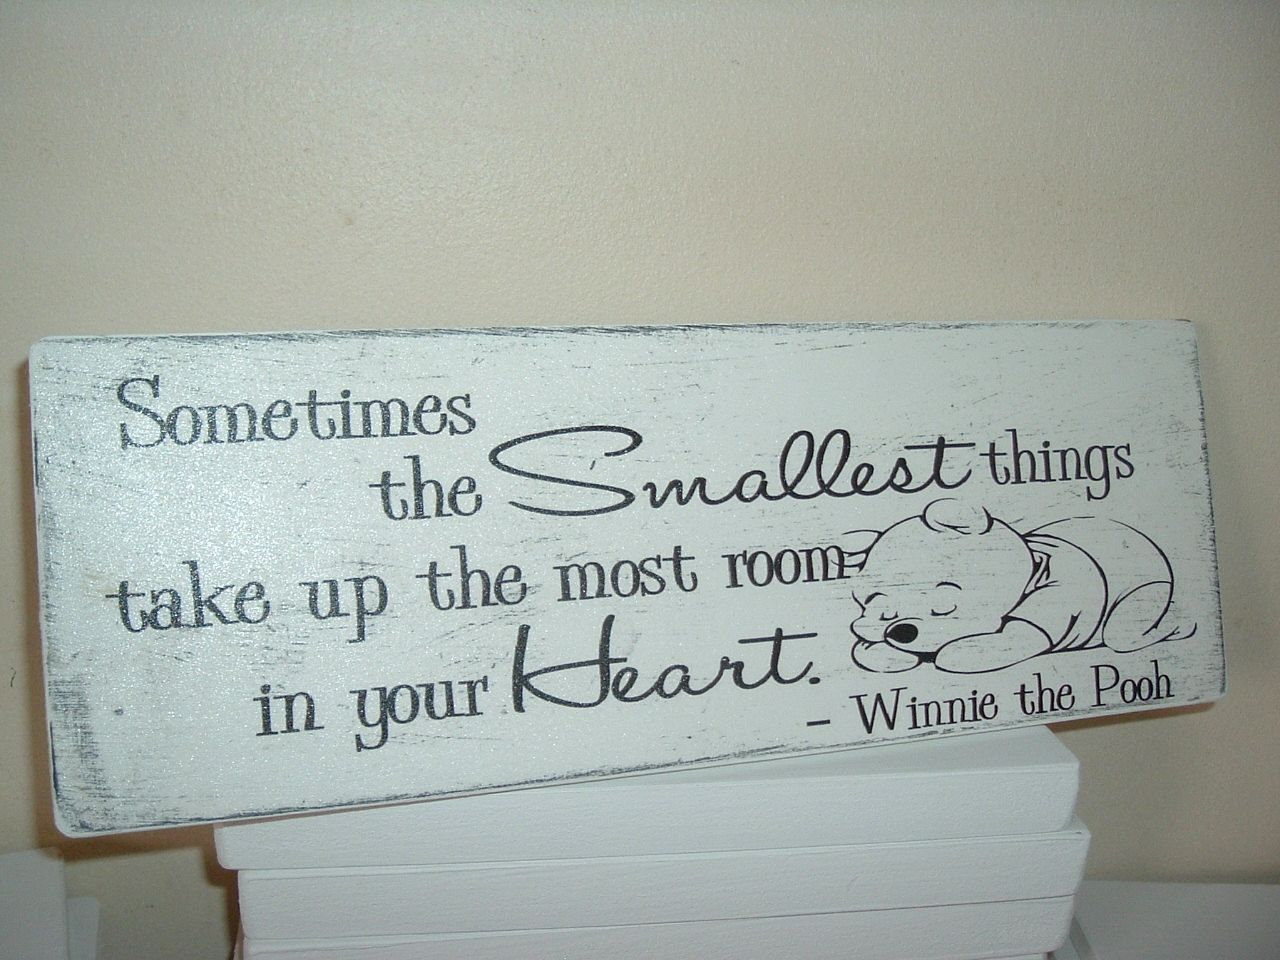 Winnie the pooh if you live to be 100 I hope i live shabby /& chic plaque sign